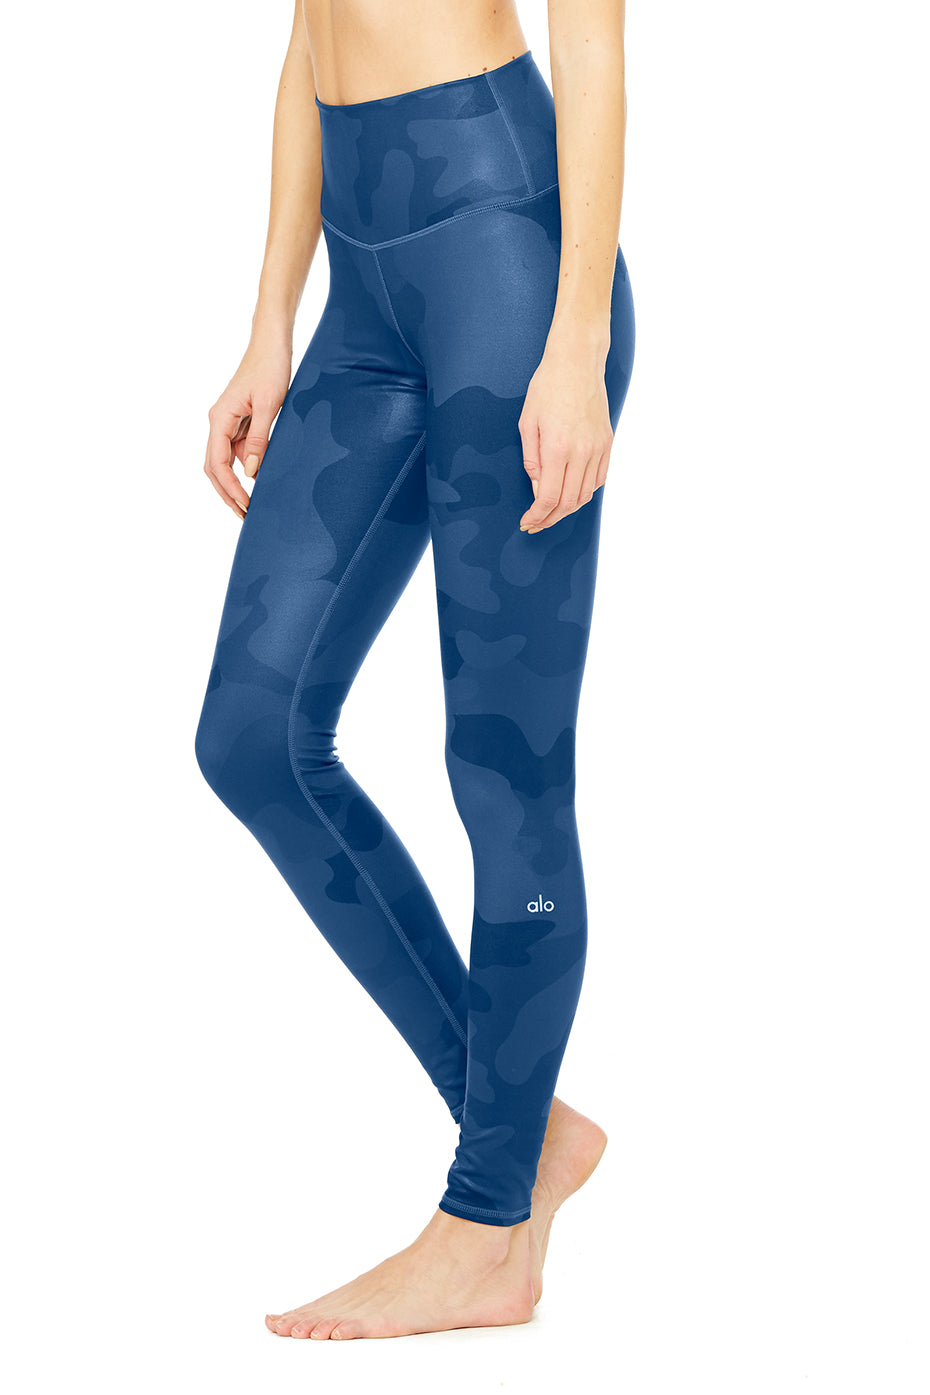 High-Waist Airbrush Legging - Print